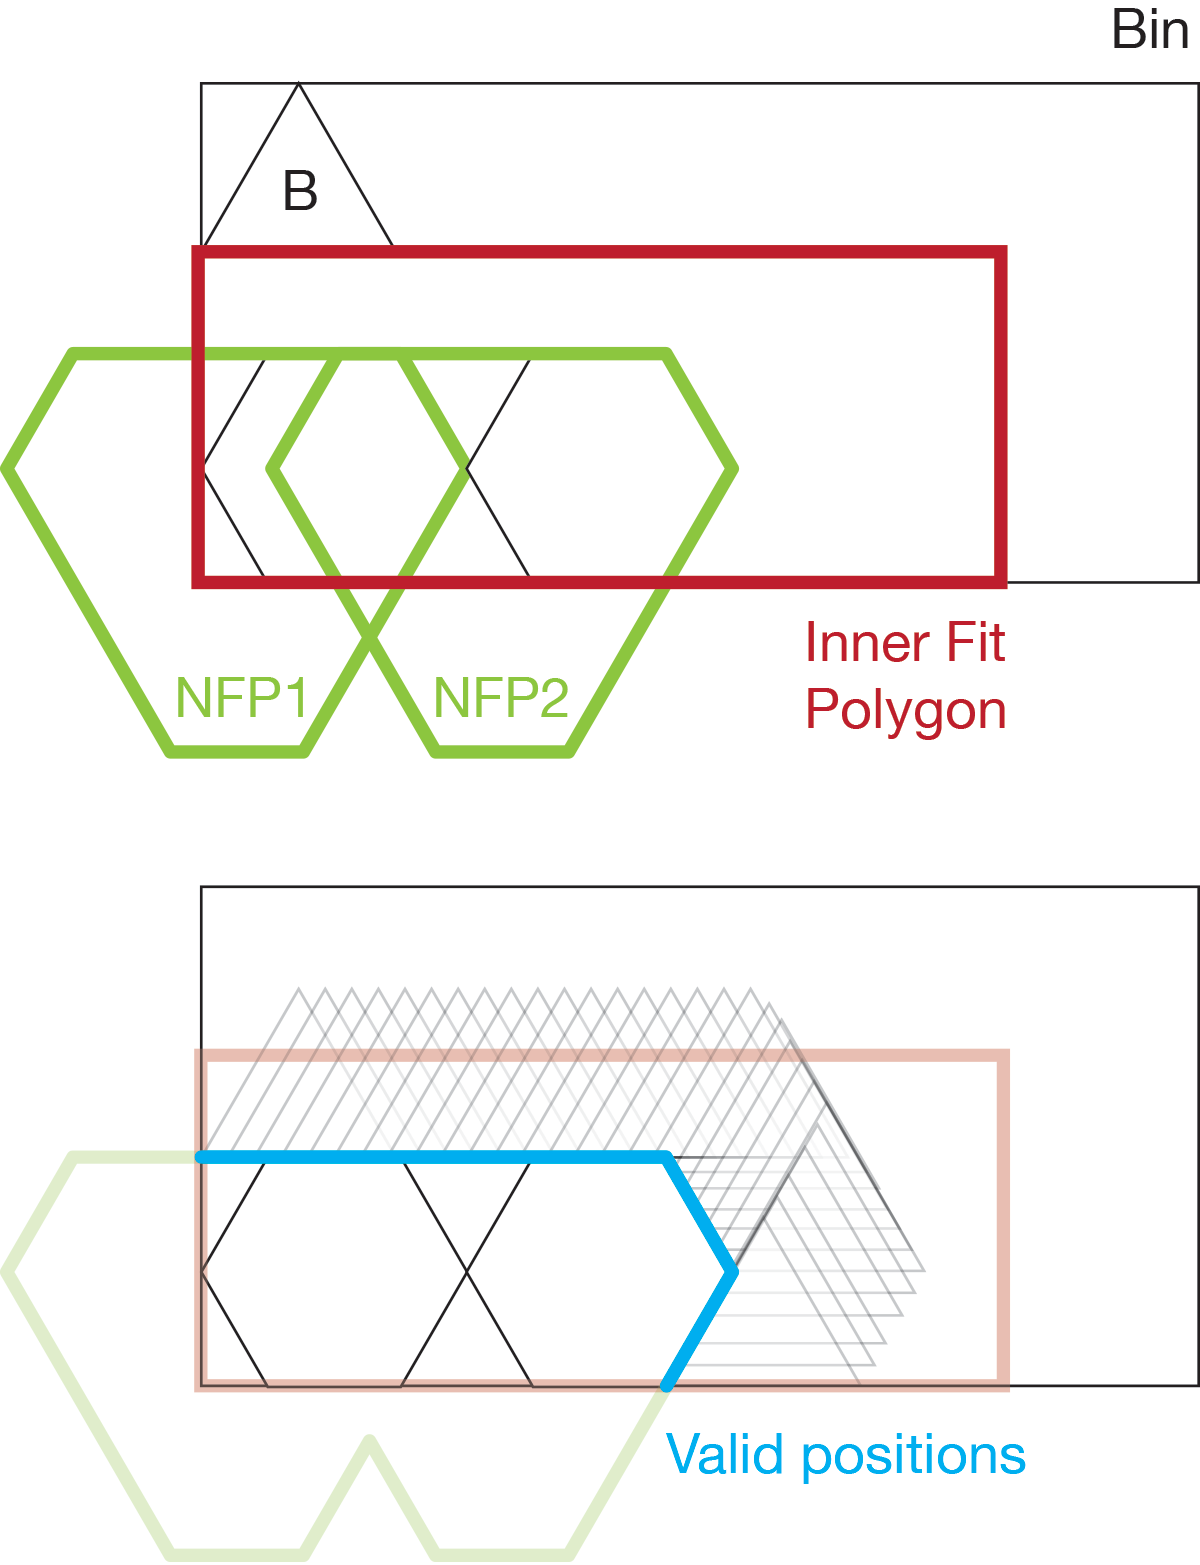 No Fit Polygon example